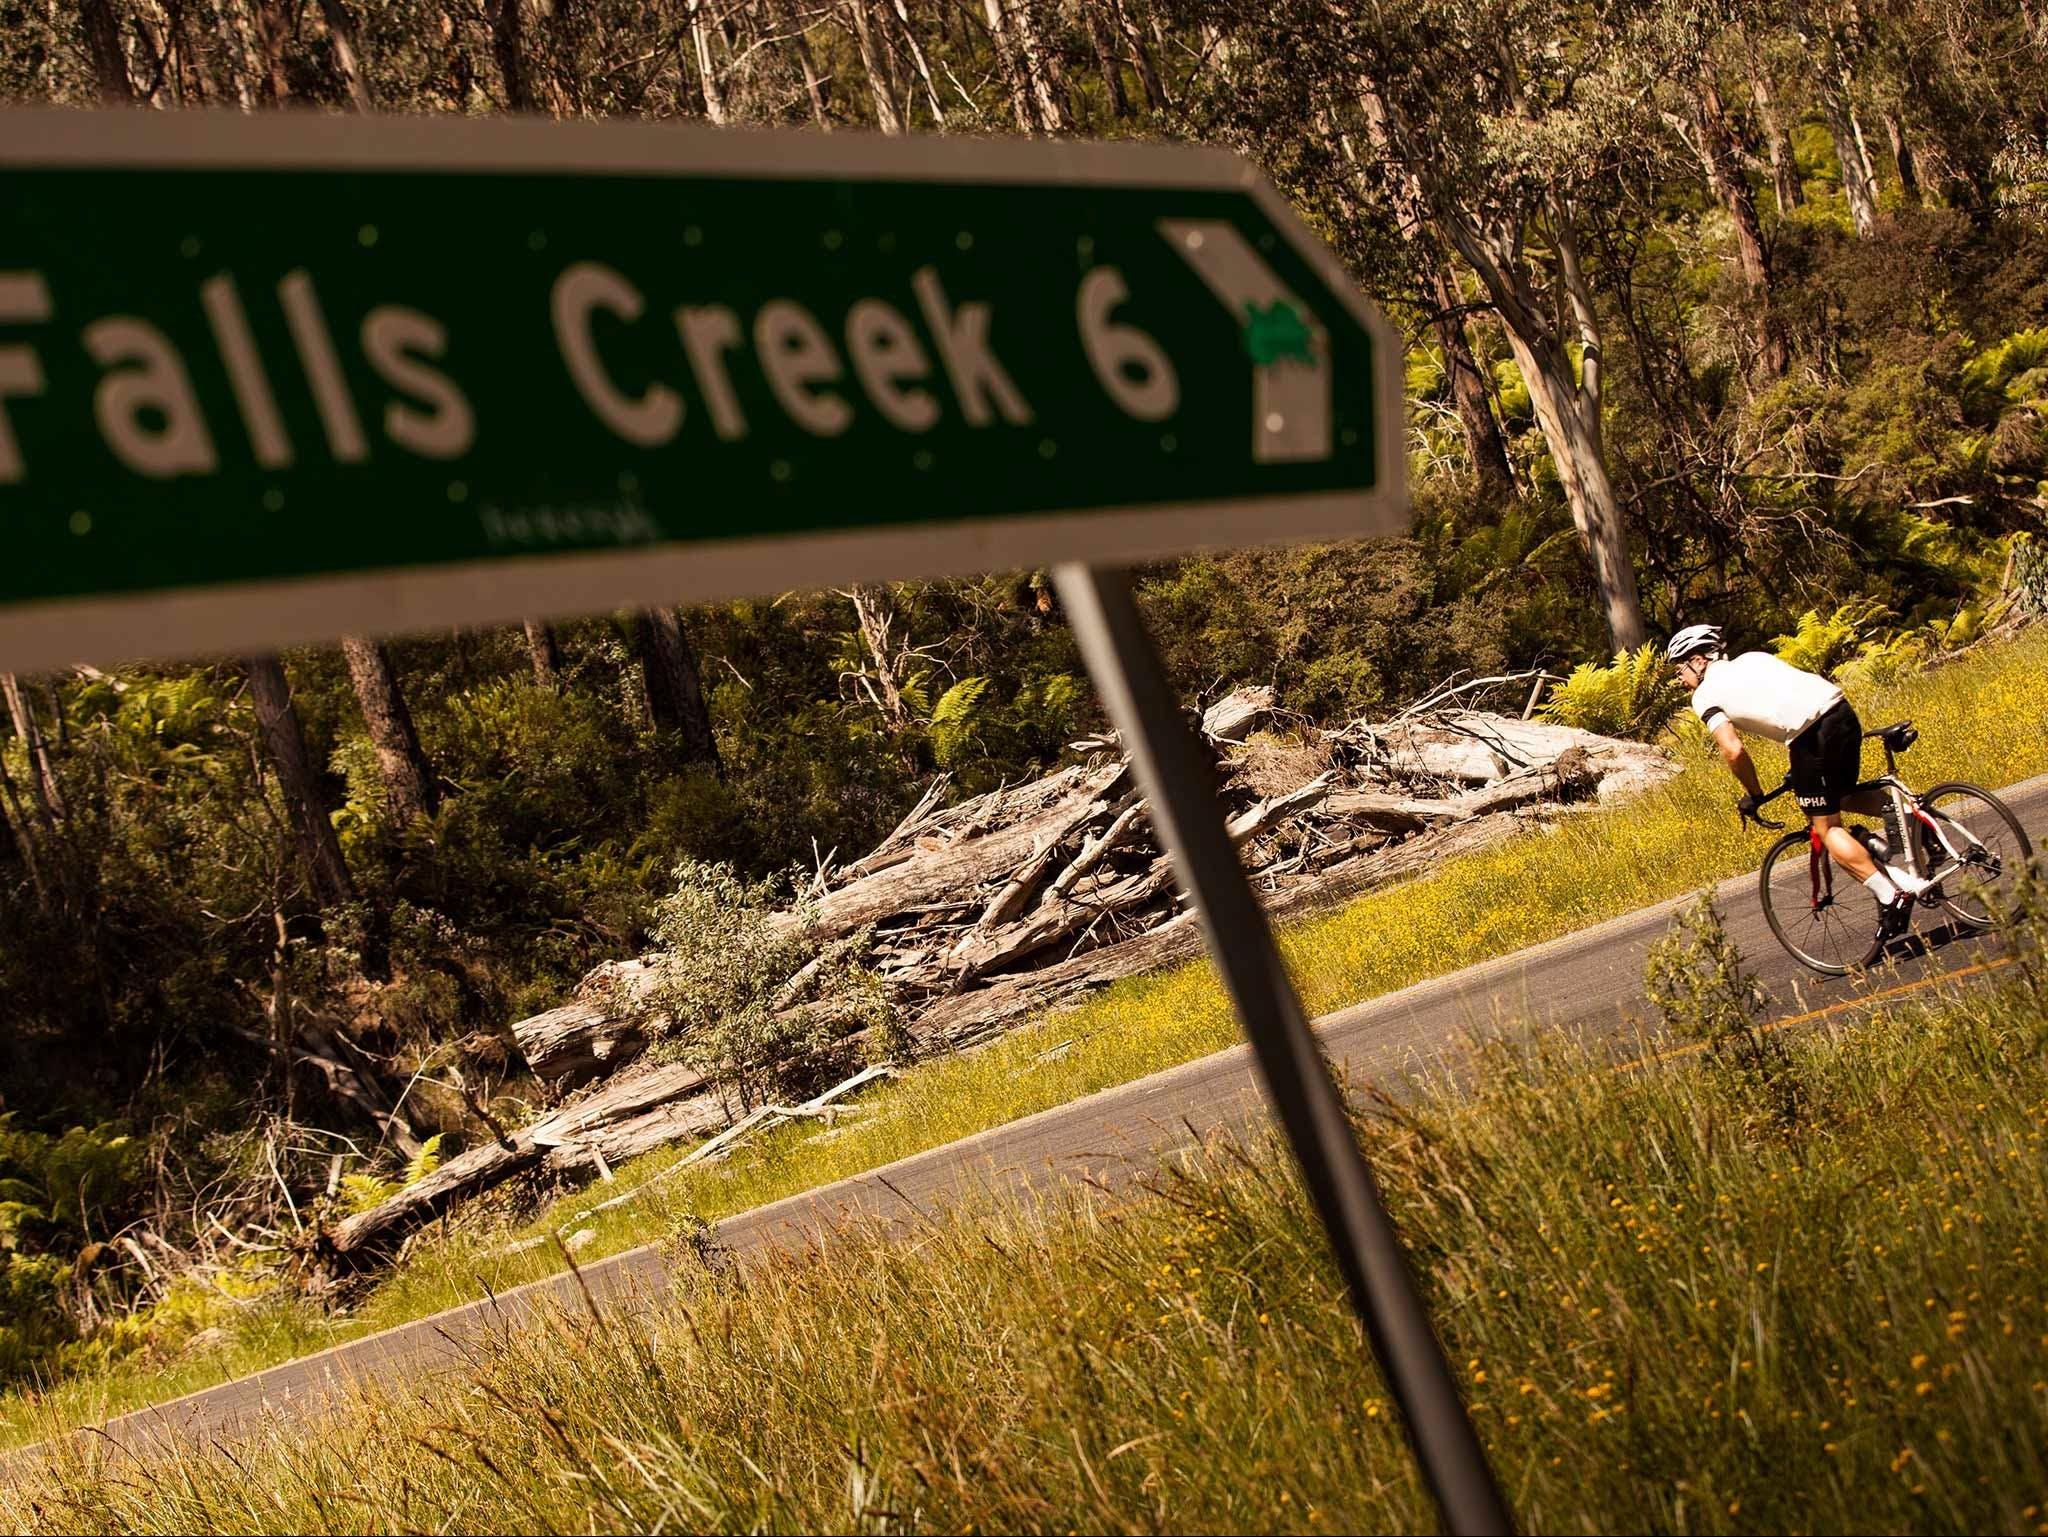 7 Peaks Ride - Falls Creek - Accommodation Tasmania